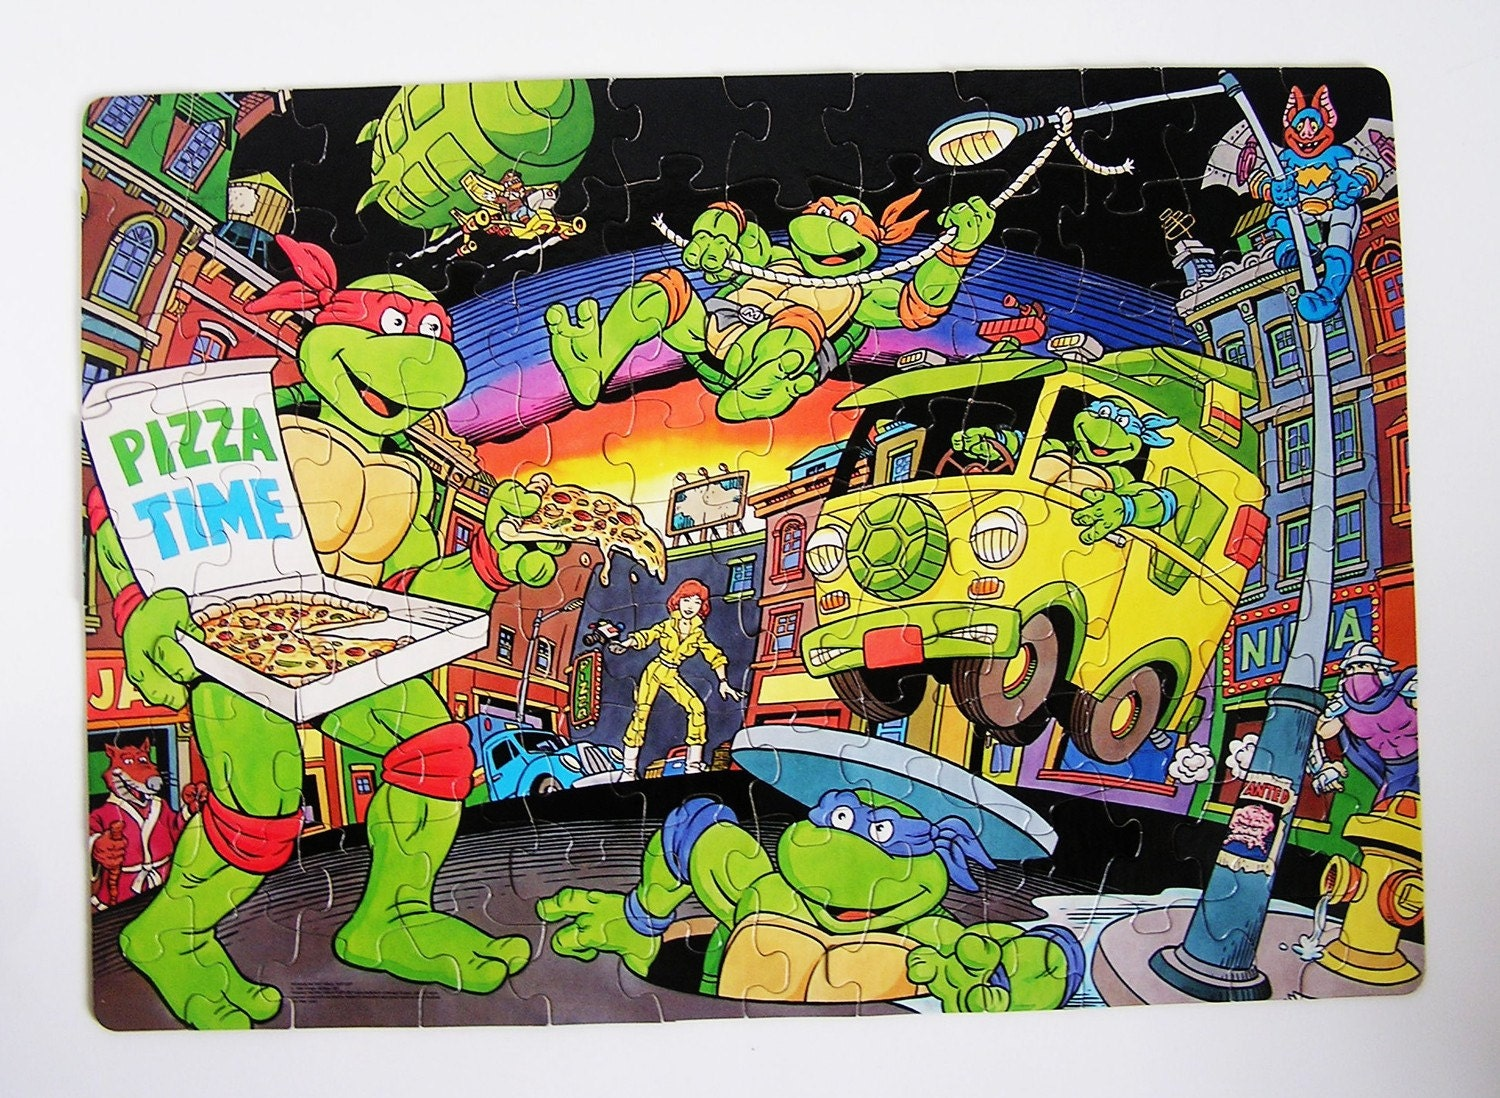 tmnt 1980 images reverse search